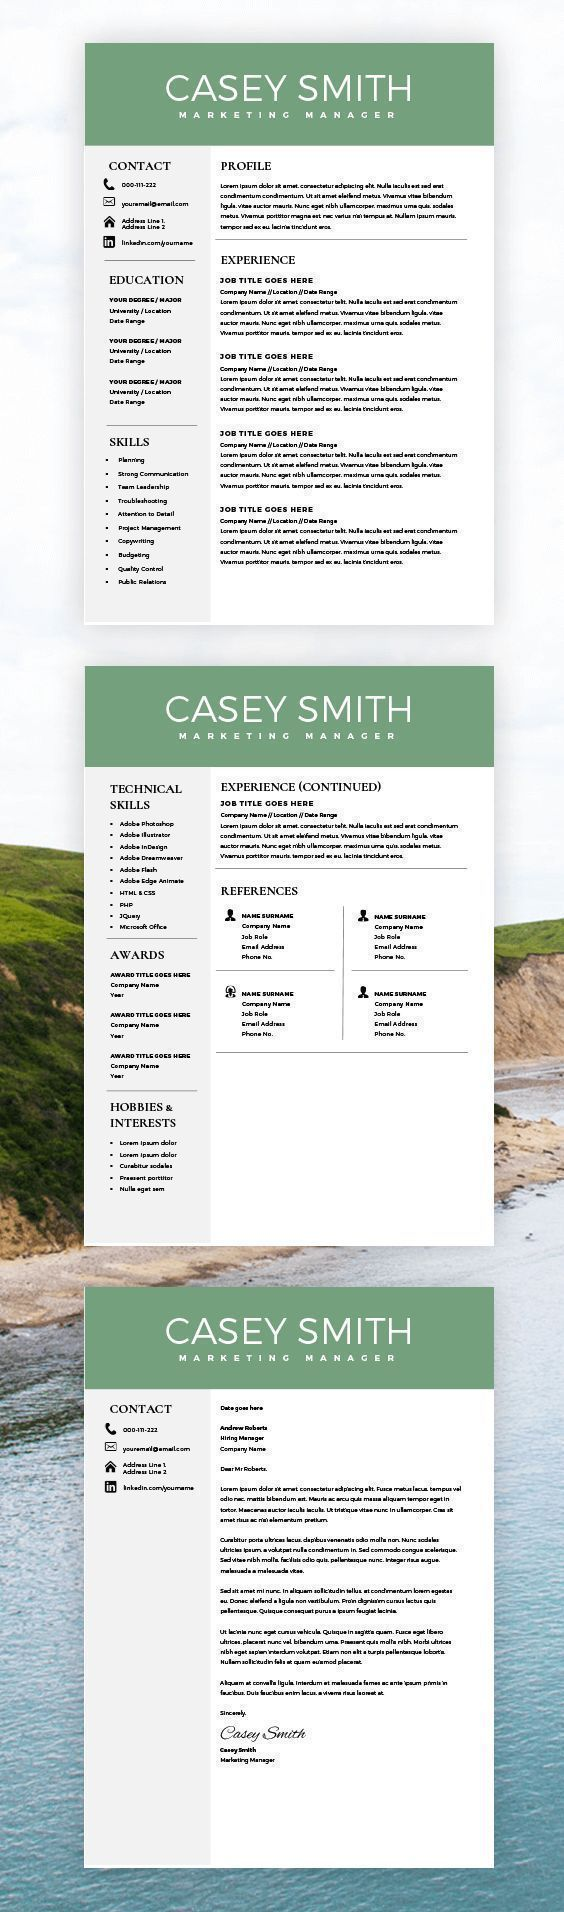 Resume Template For Word With Cover Letter  Instant Download Resume  2 Page Cv Template  Simple